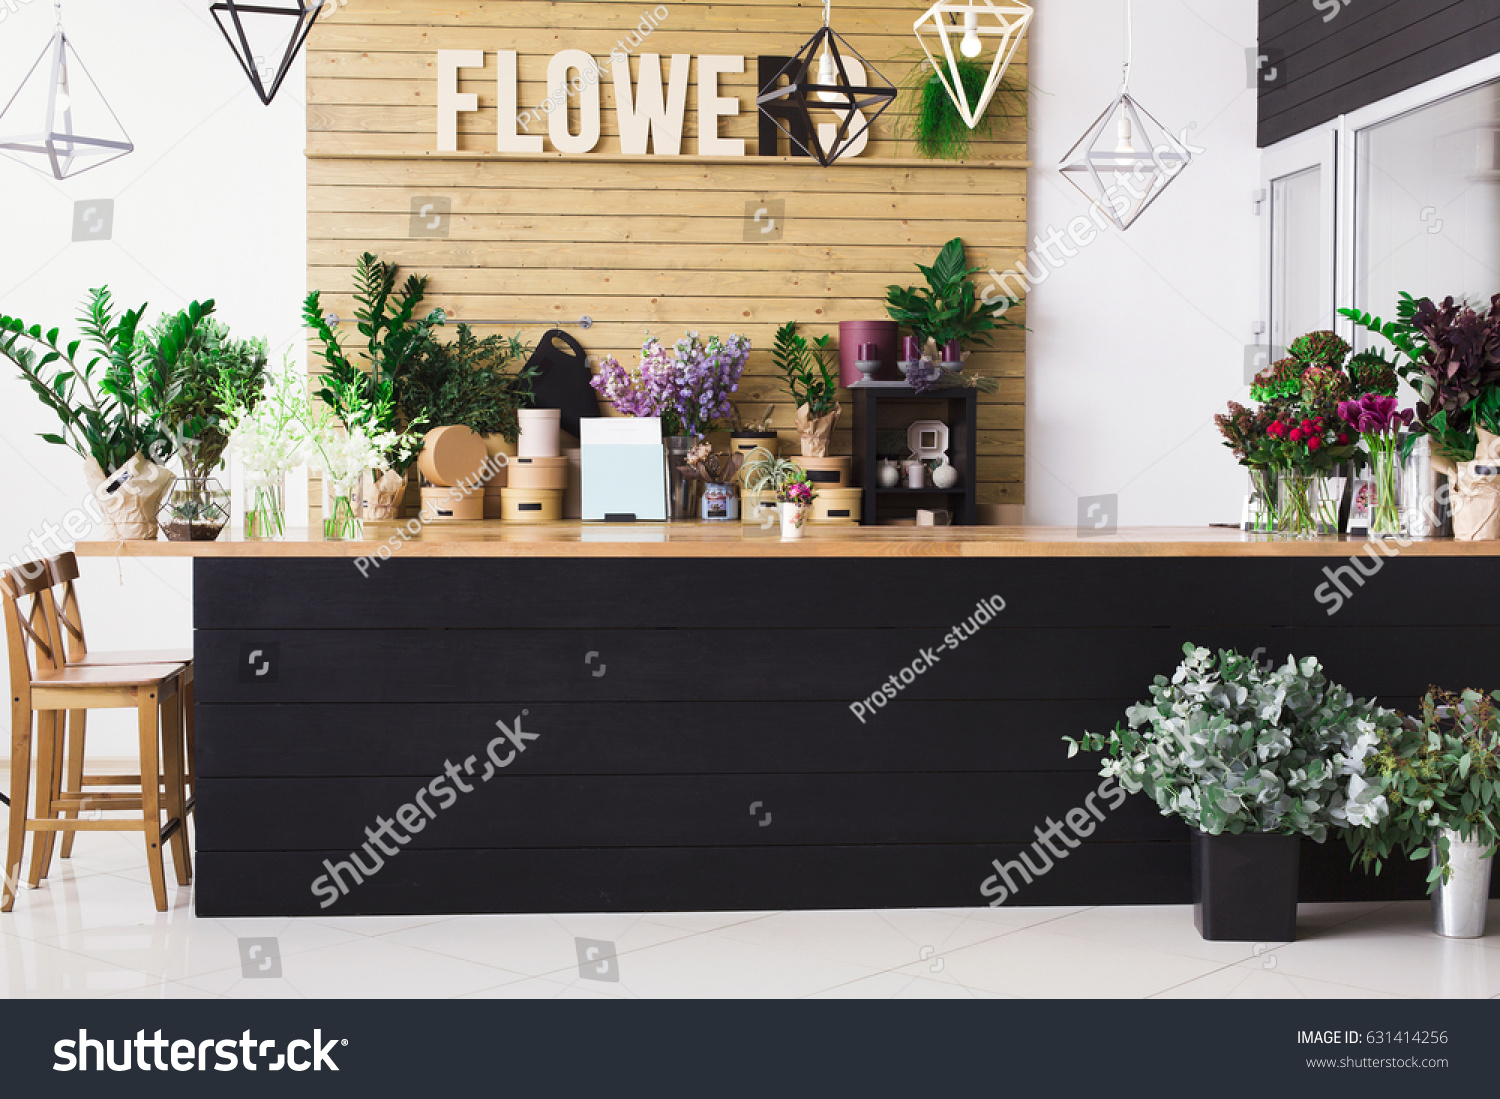 Small Business Flowers Delivery Modern Flower Stock Photo